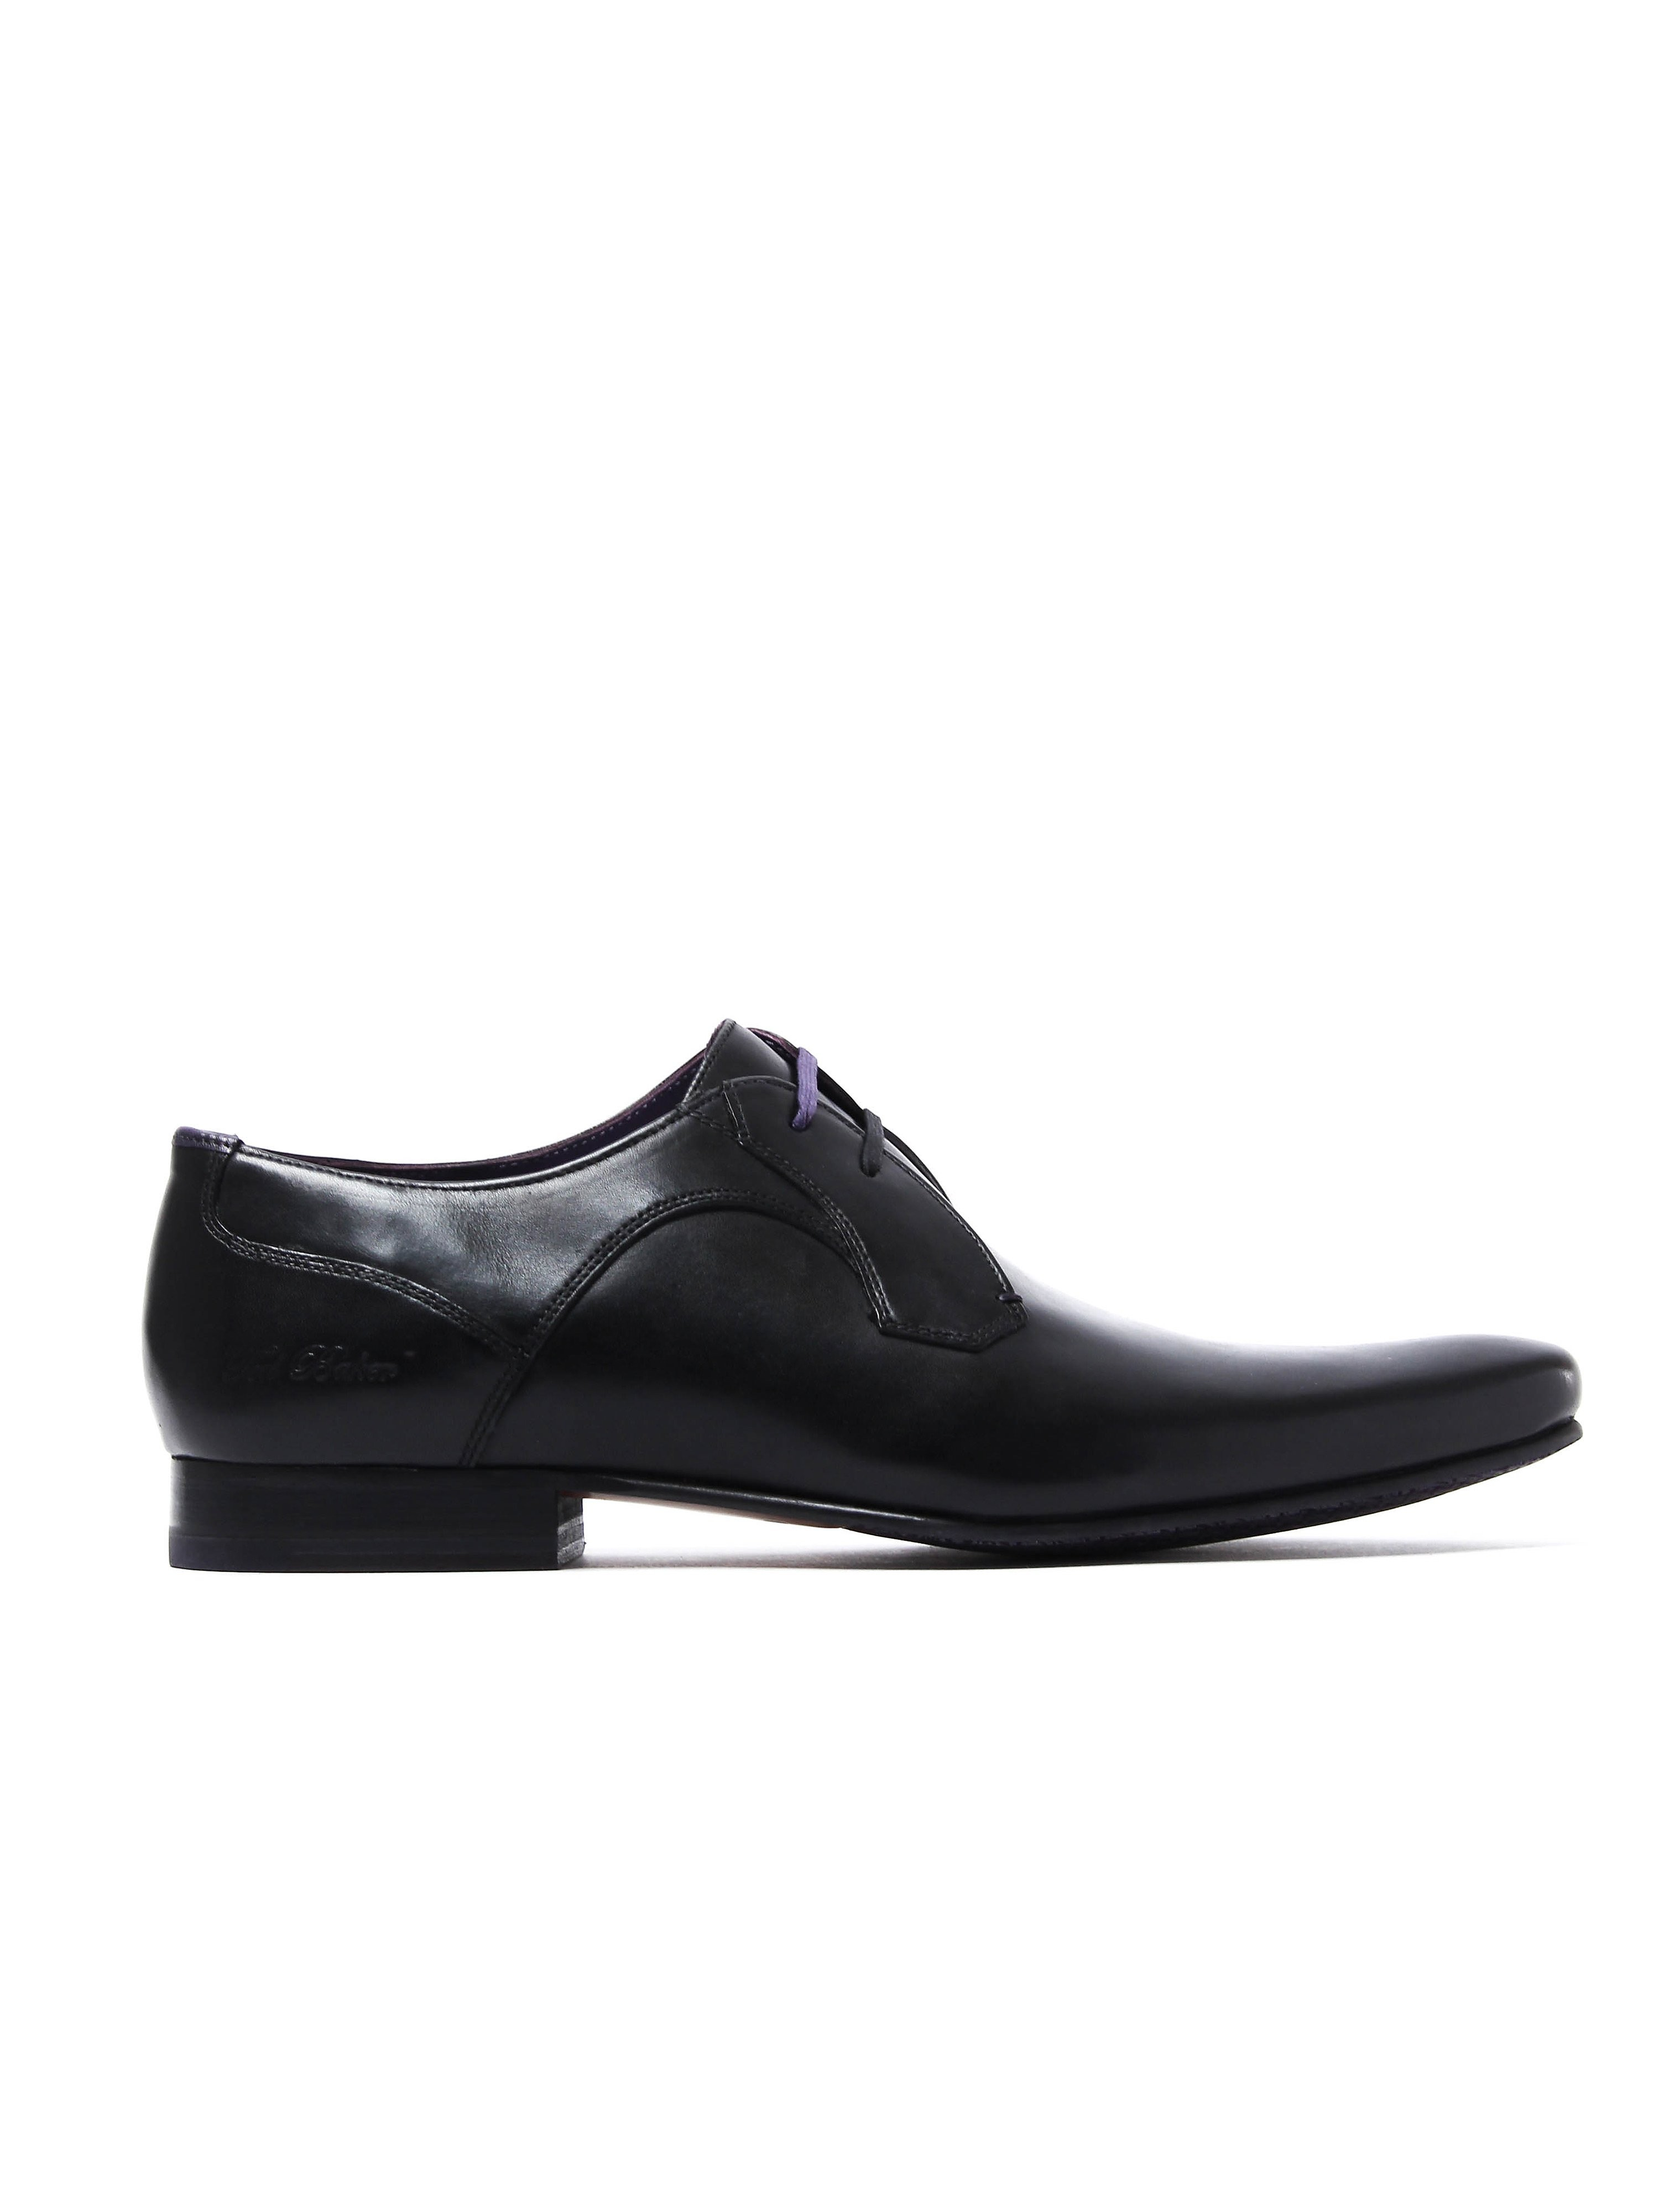 Ted Baker Men's Martt 2 Leather Derby Shoes - Black